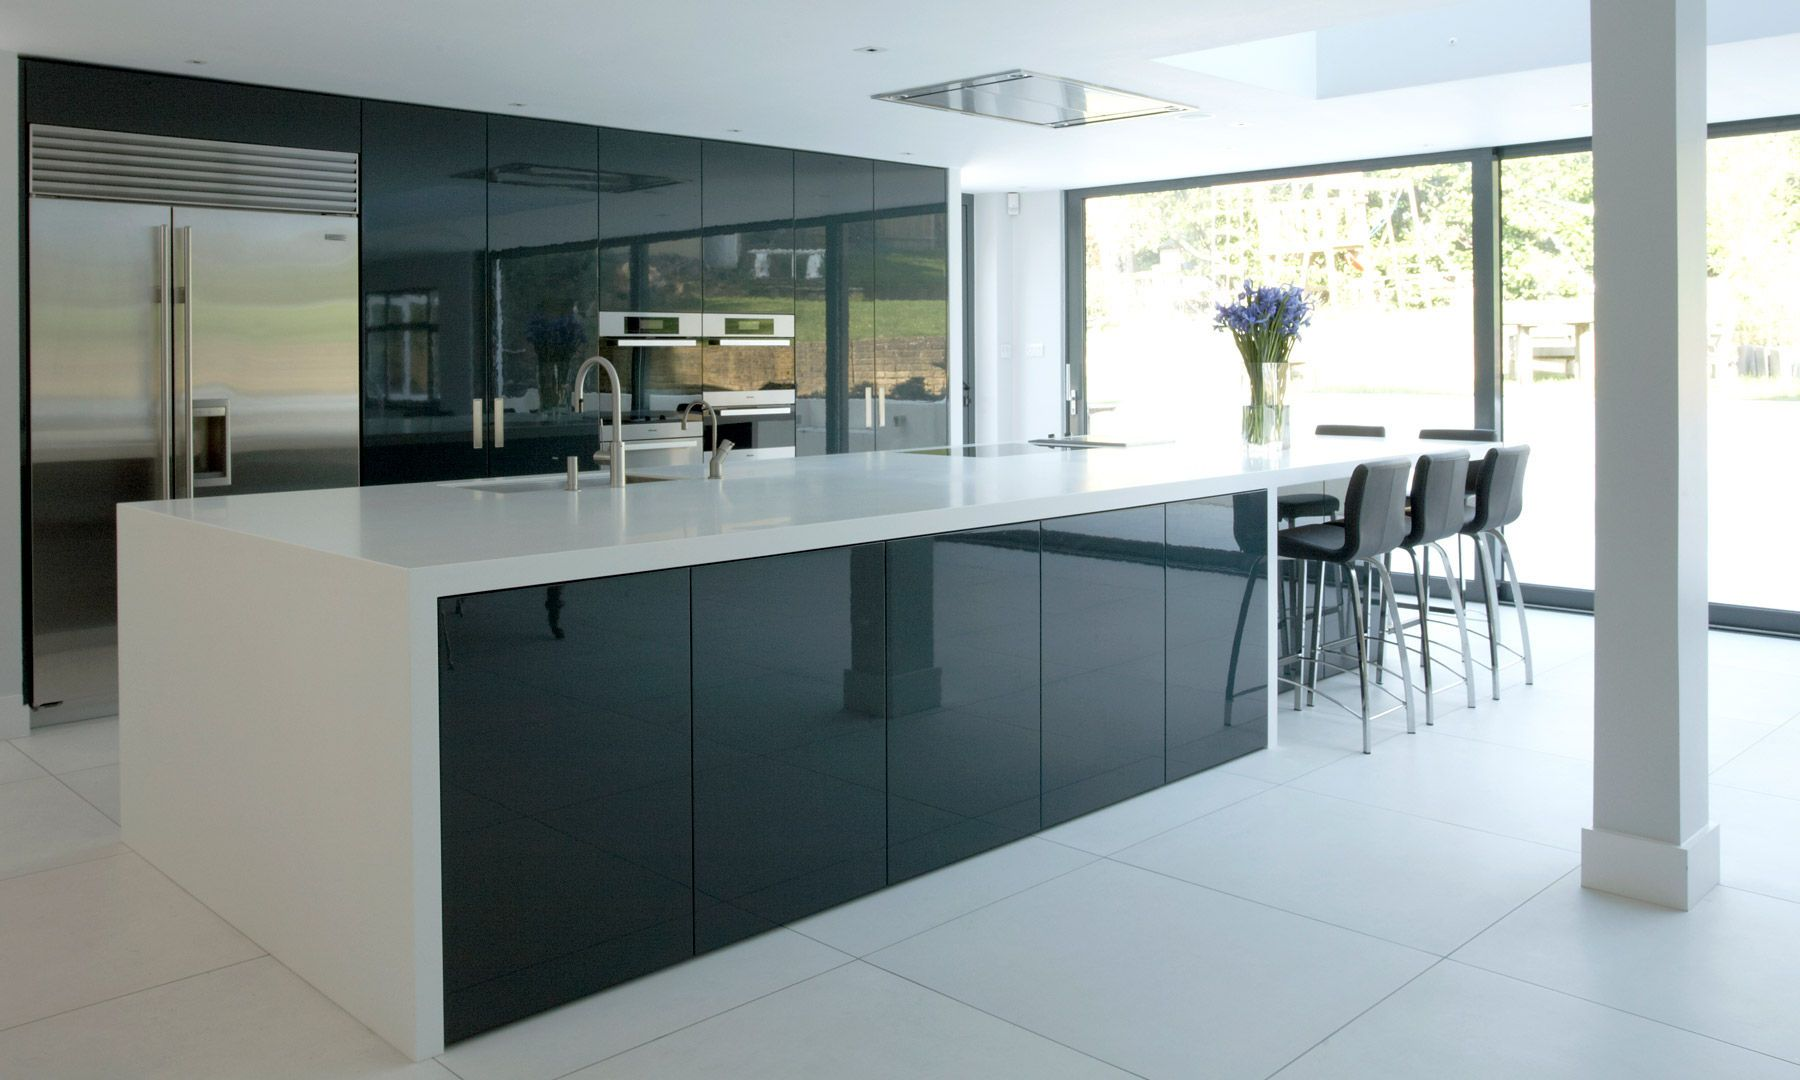 Contemporary Kitchen With High Gloss Lacquered Finish High Gloss Kitchen Cabinets High Gloss Kitchen Gloss Kitchen Cabinets